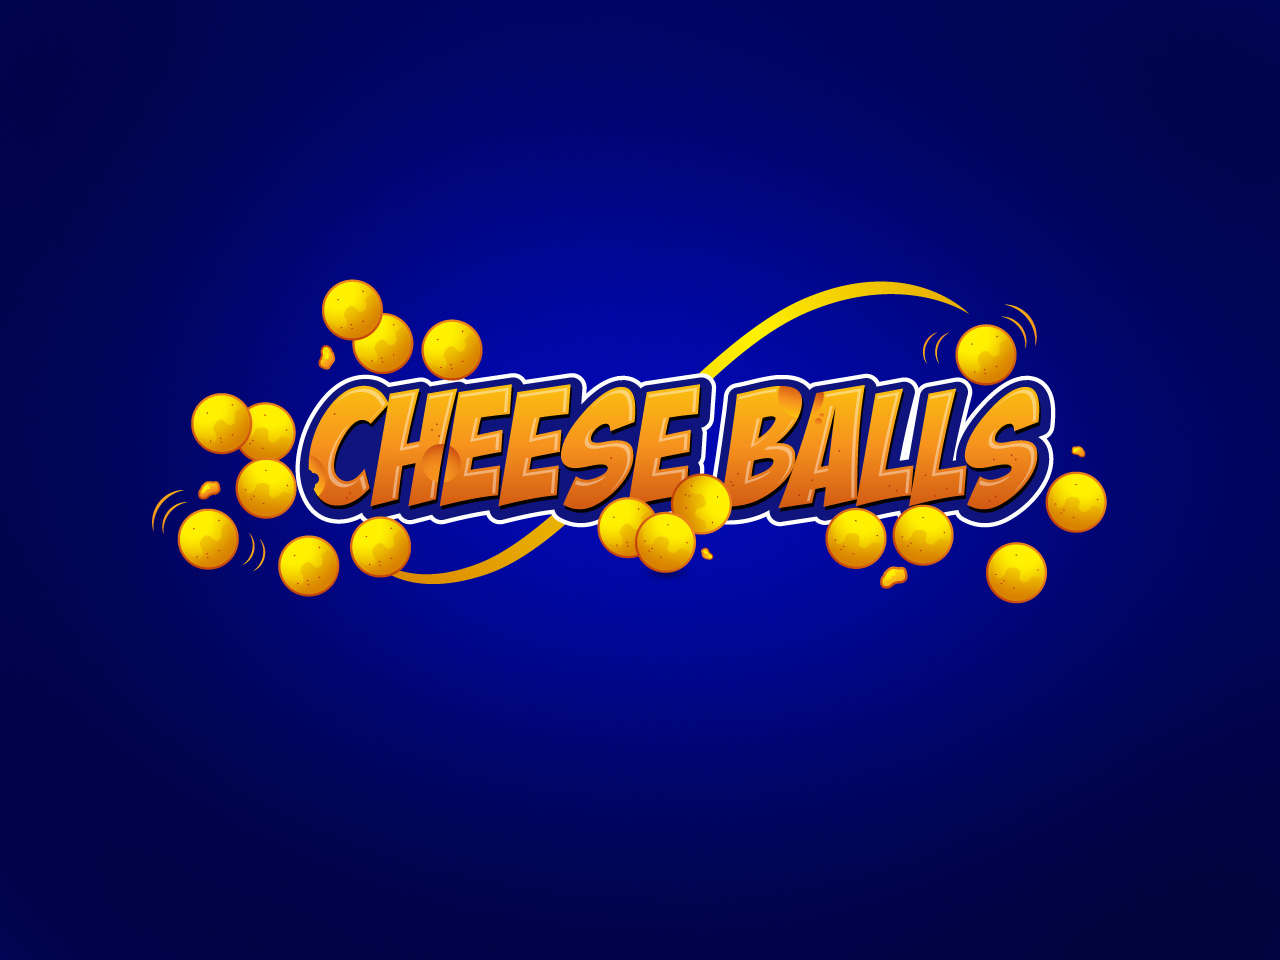 Logo Design by jpbituin - Entry No. 49 in the Logo Design Contest Imaginative Logo Design for Cheese Balls.